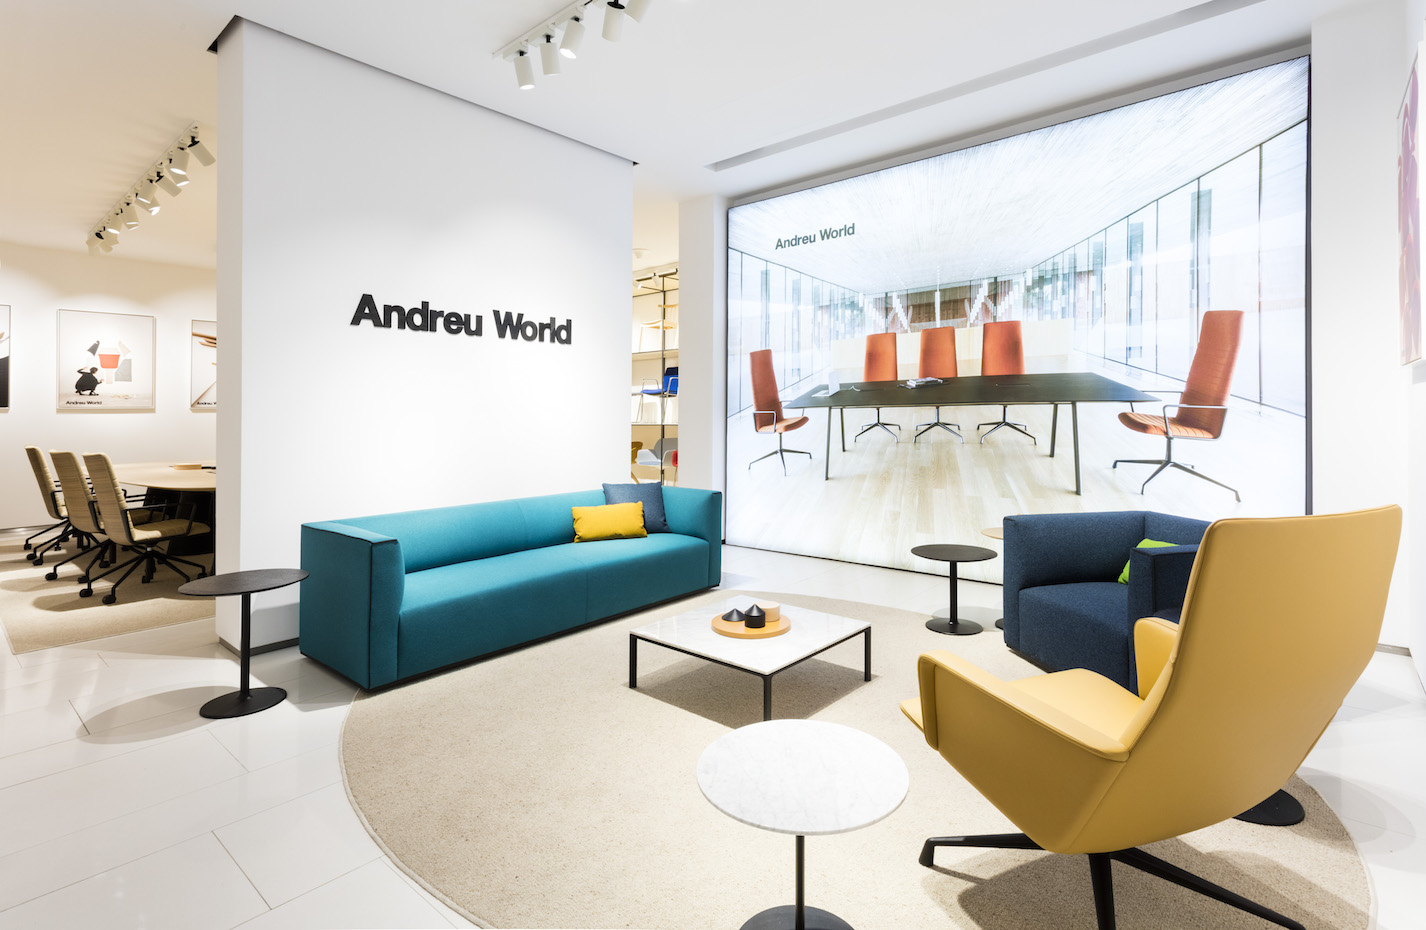 'Showroom' de Andreu World en Madrid.